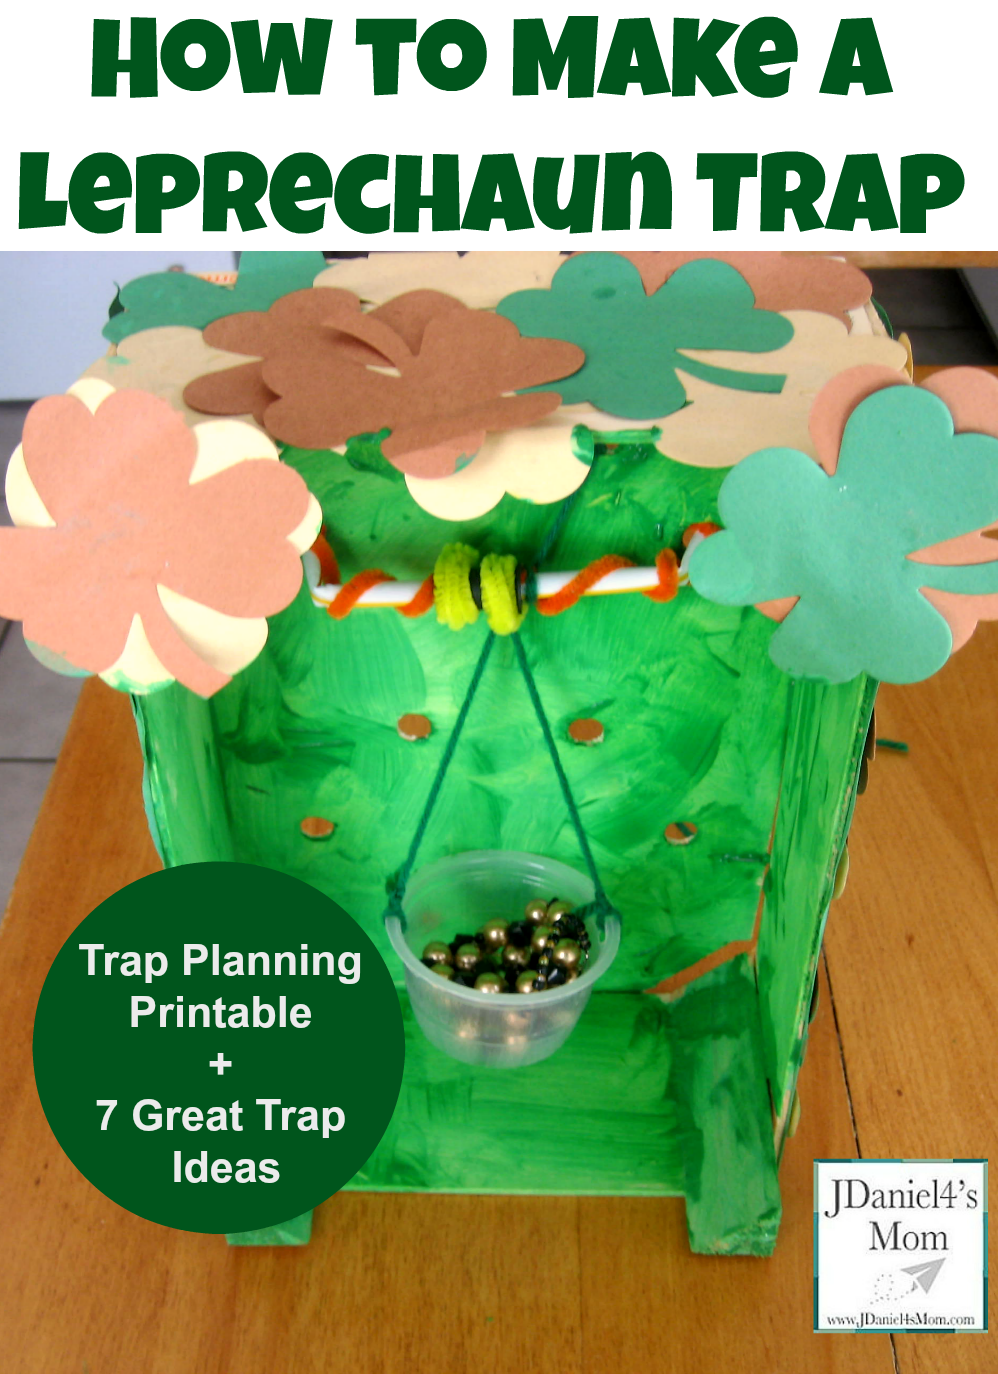 how to make a leprechaun trap with trap ideas